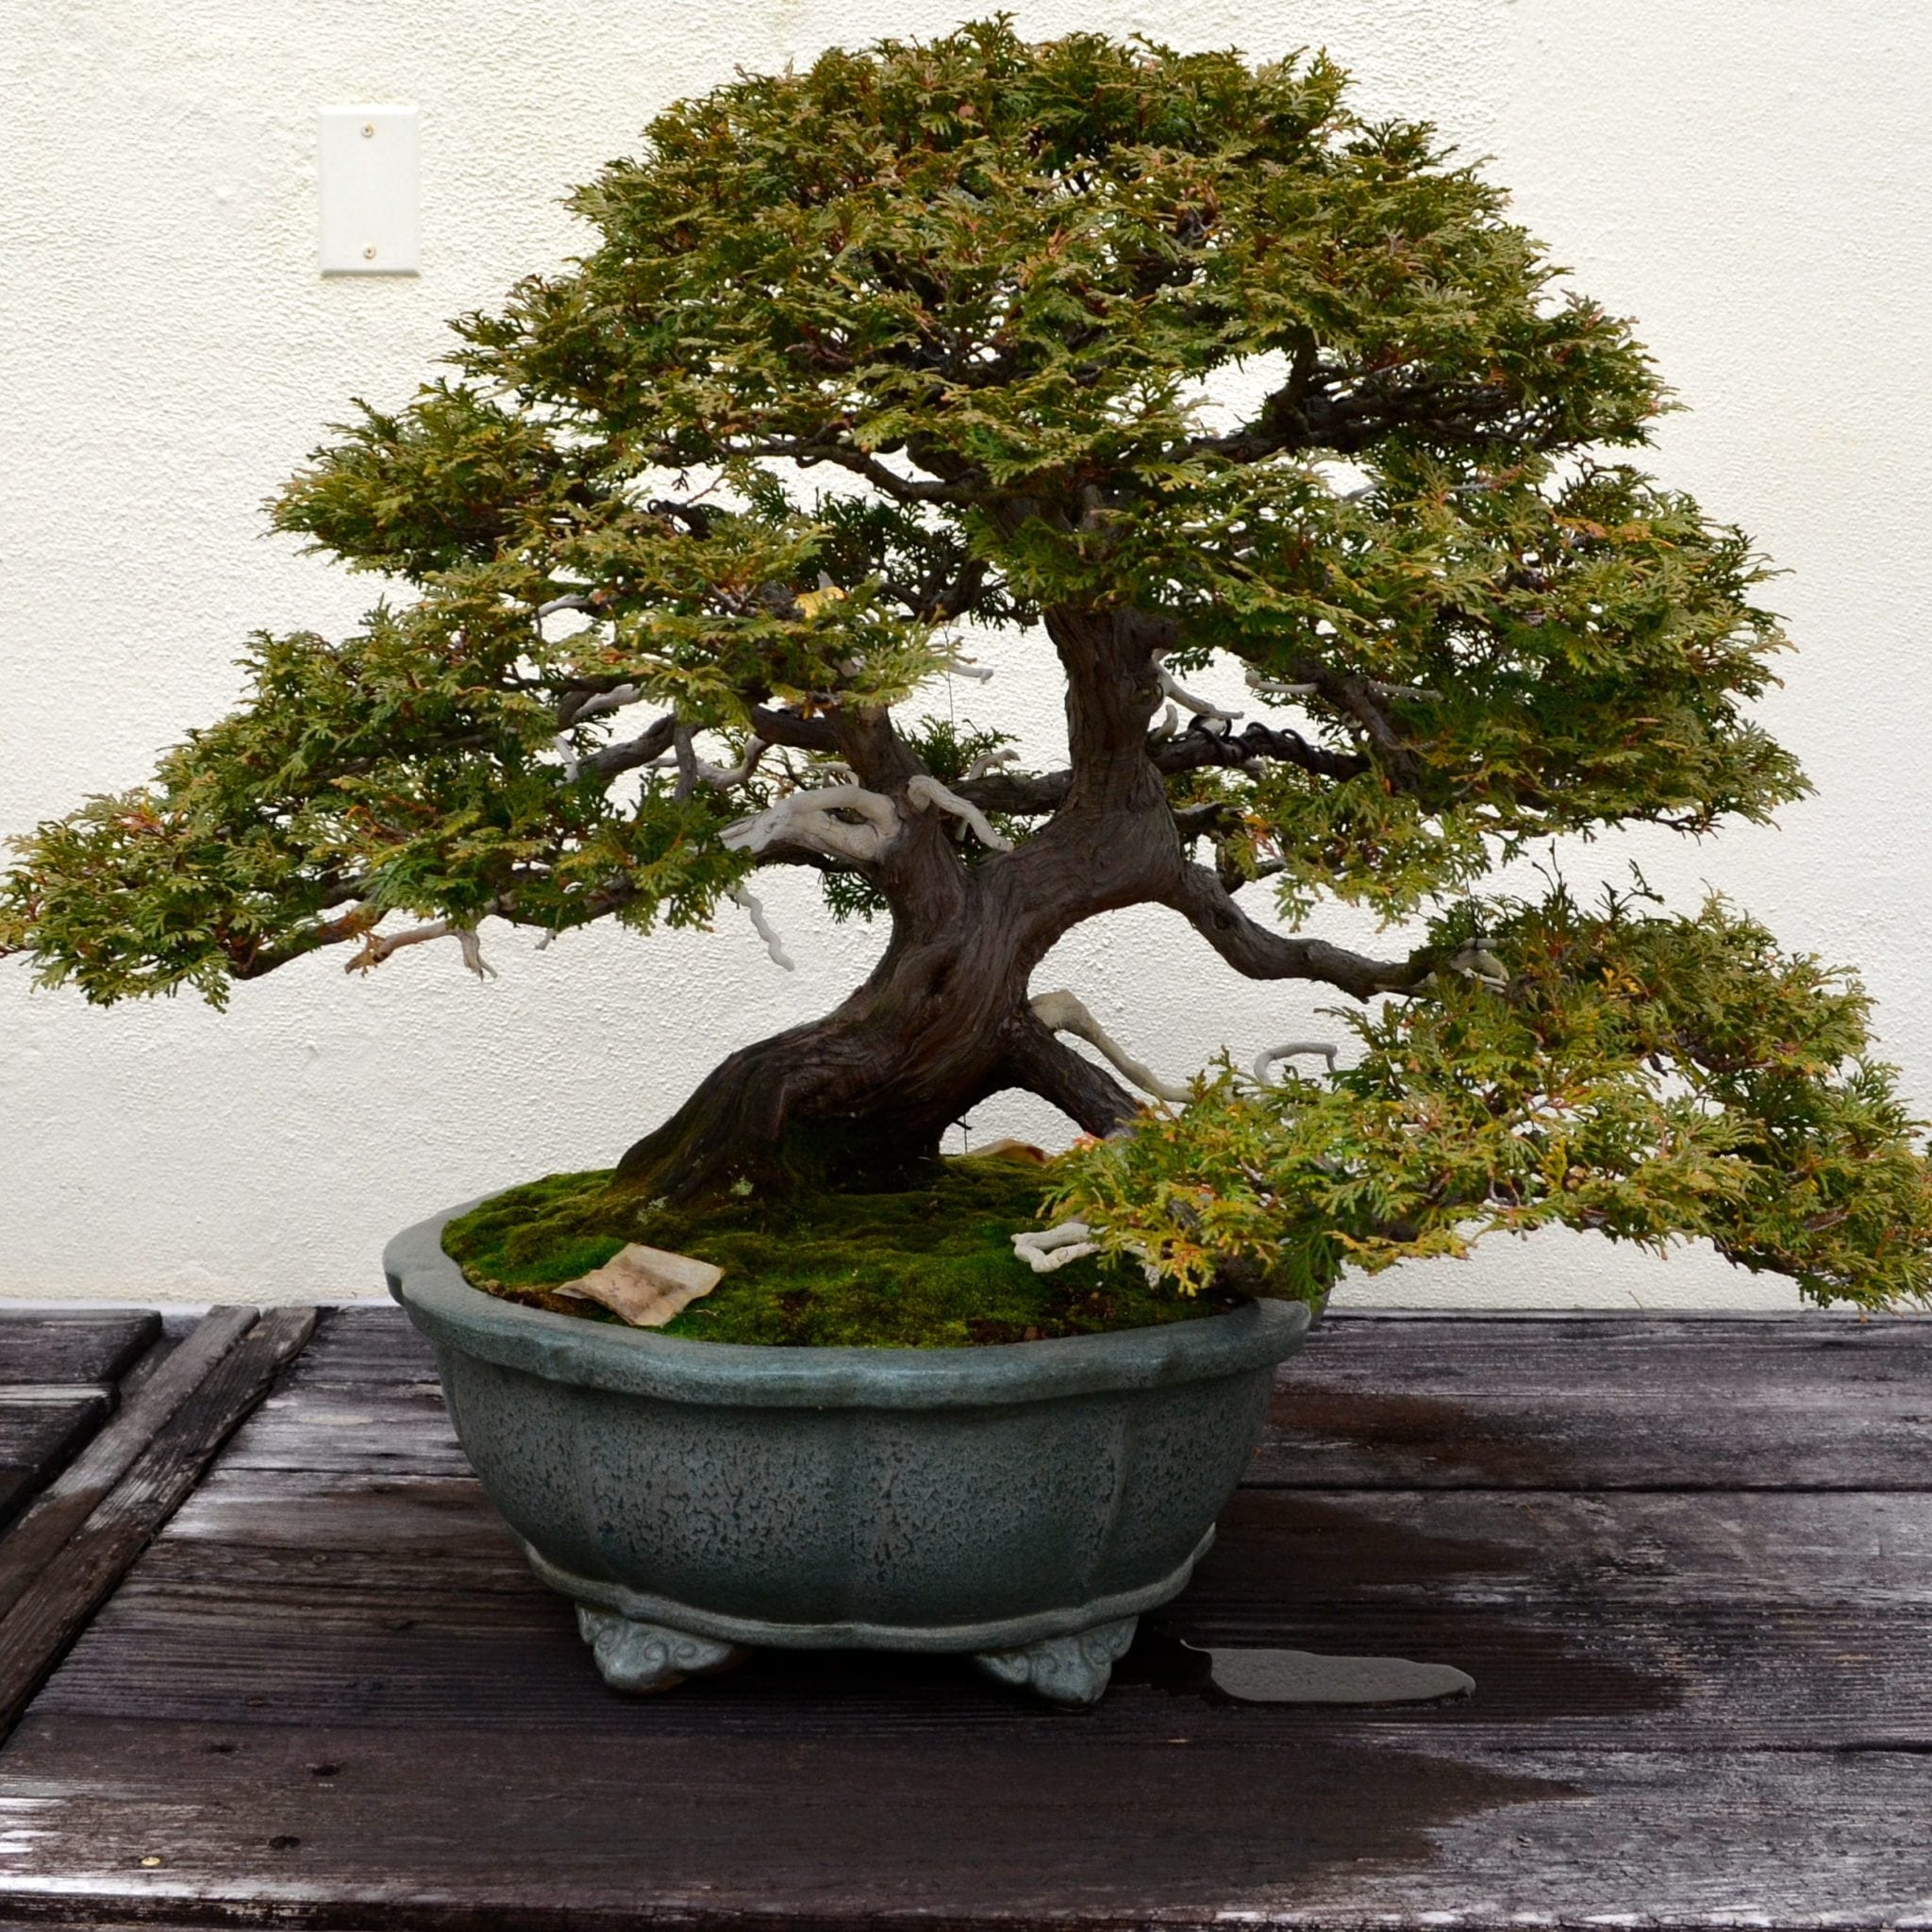 trained bonsai trained bonsai tree bought bonsai tree